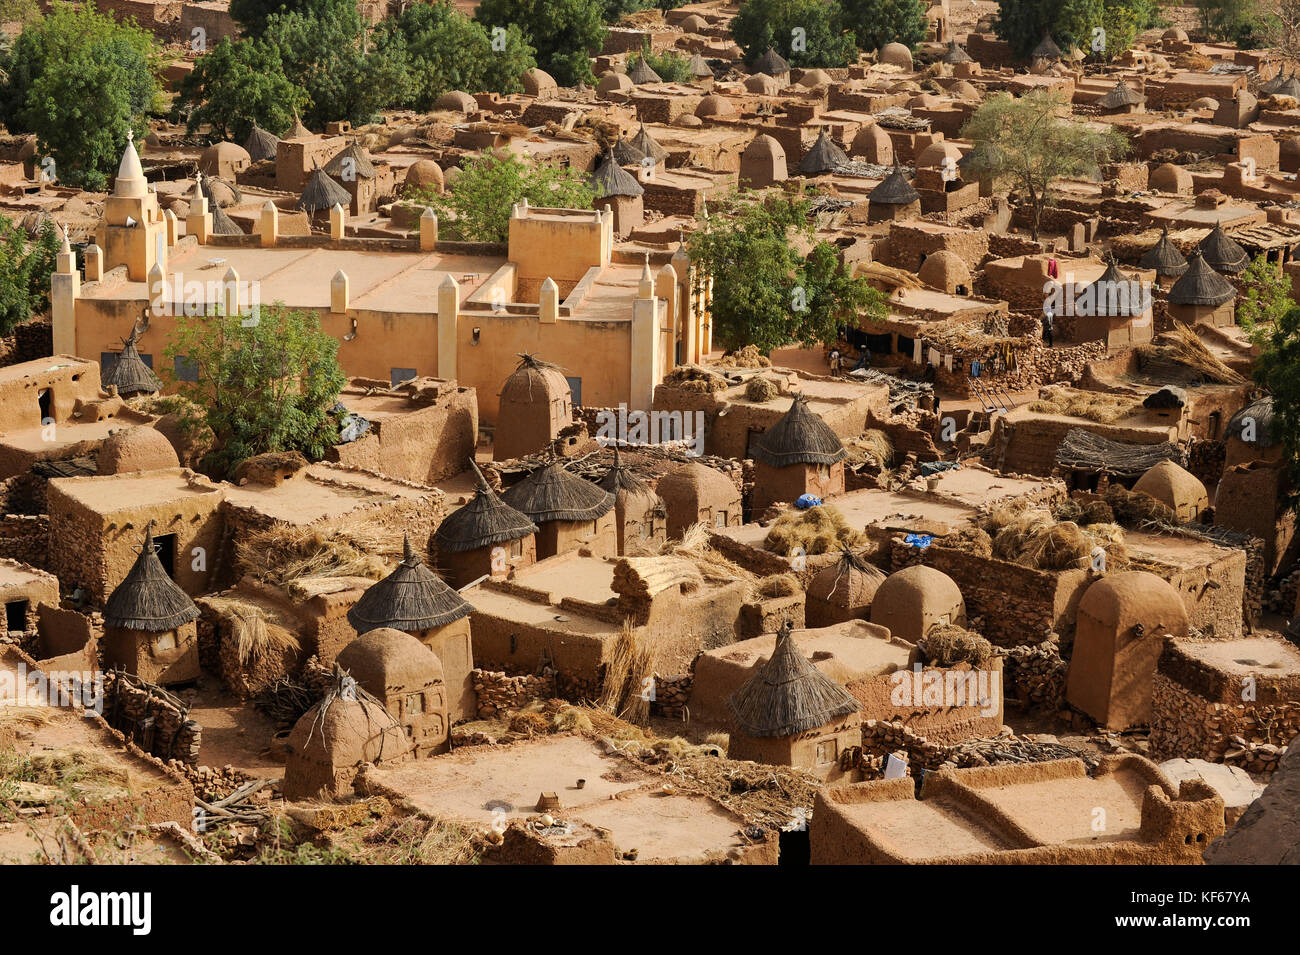 Mali songo dogon village stock photos mali songo dogon village mali dogon land dogon village songho with clay architecture at the falaise which is unesco biocorpaavc